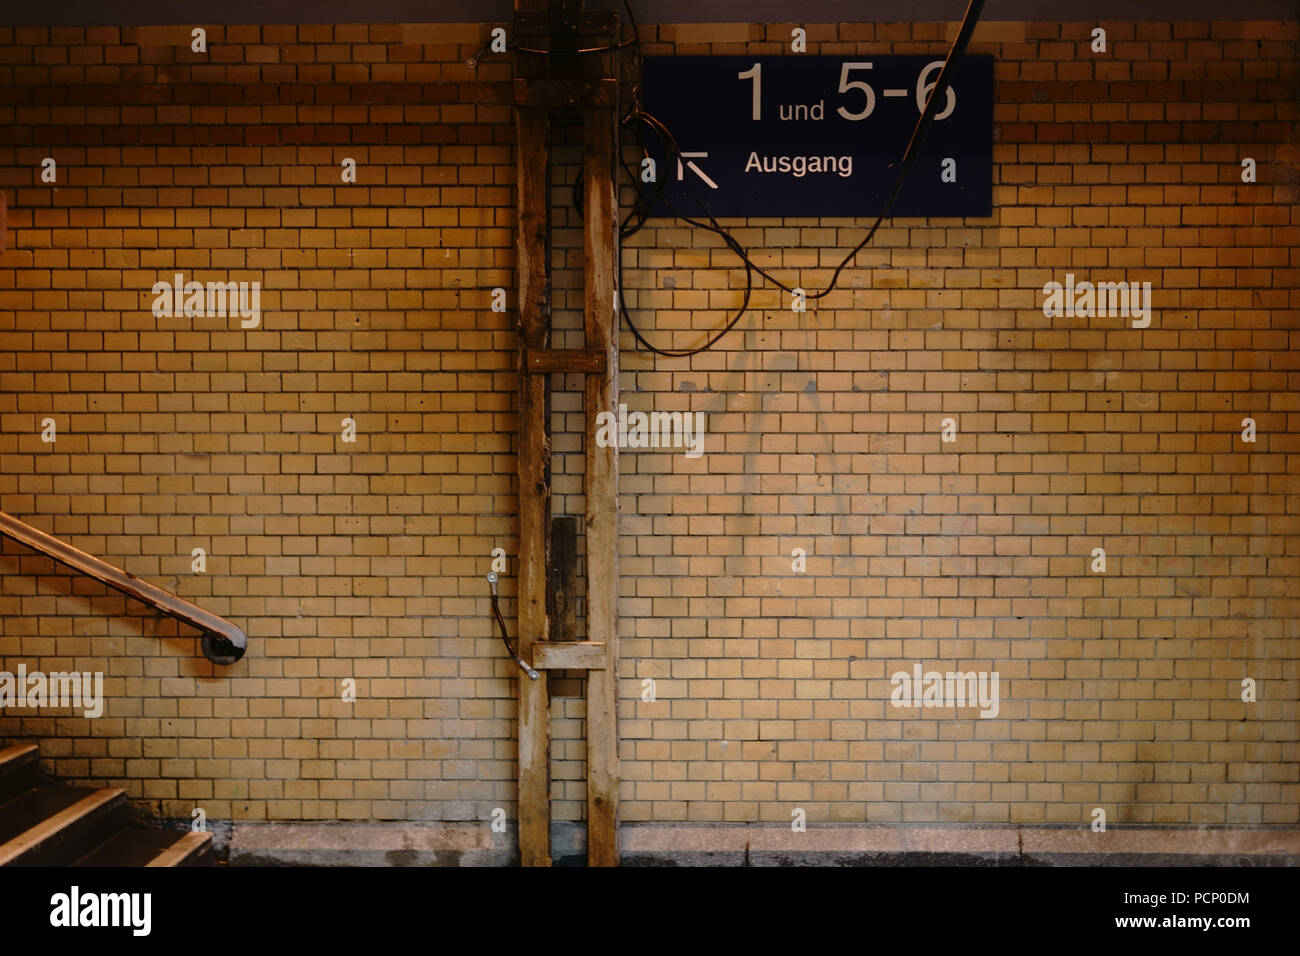 The exit of an old nostalgic station tunnel with tiled walls. - Stock Image